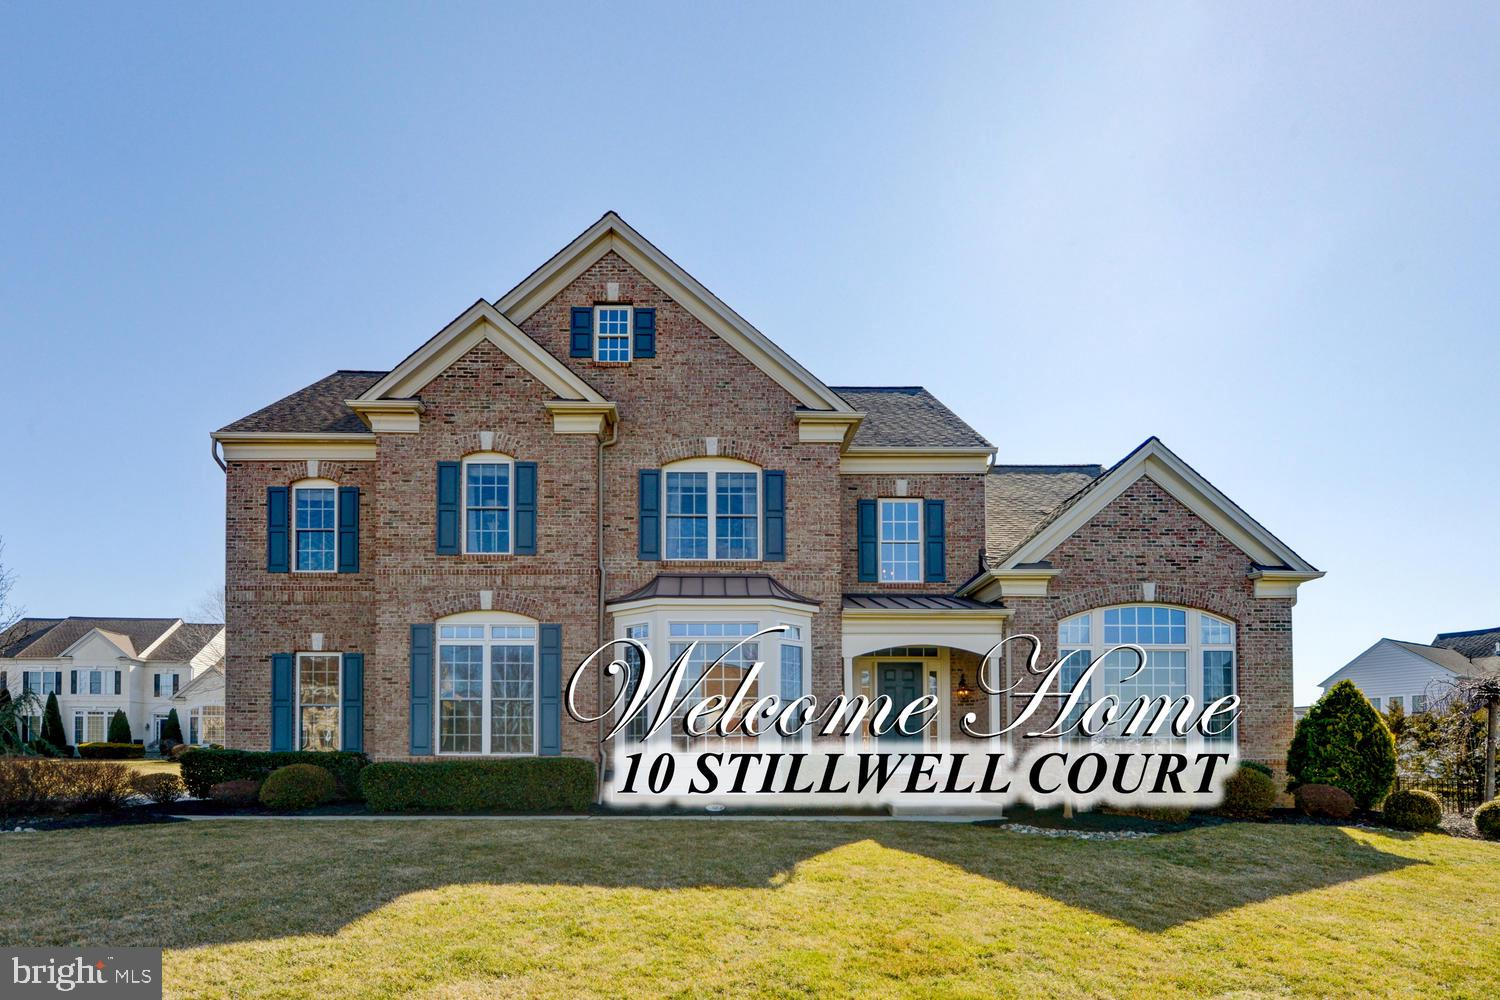 10 STILLWELL COURT, ROBBINSVILLE, NJ 08691